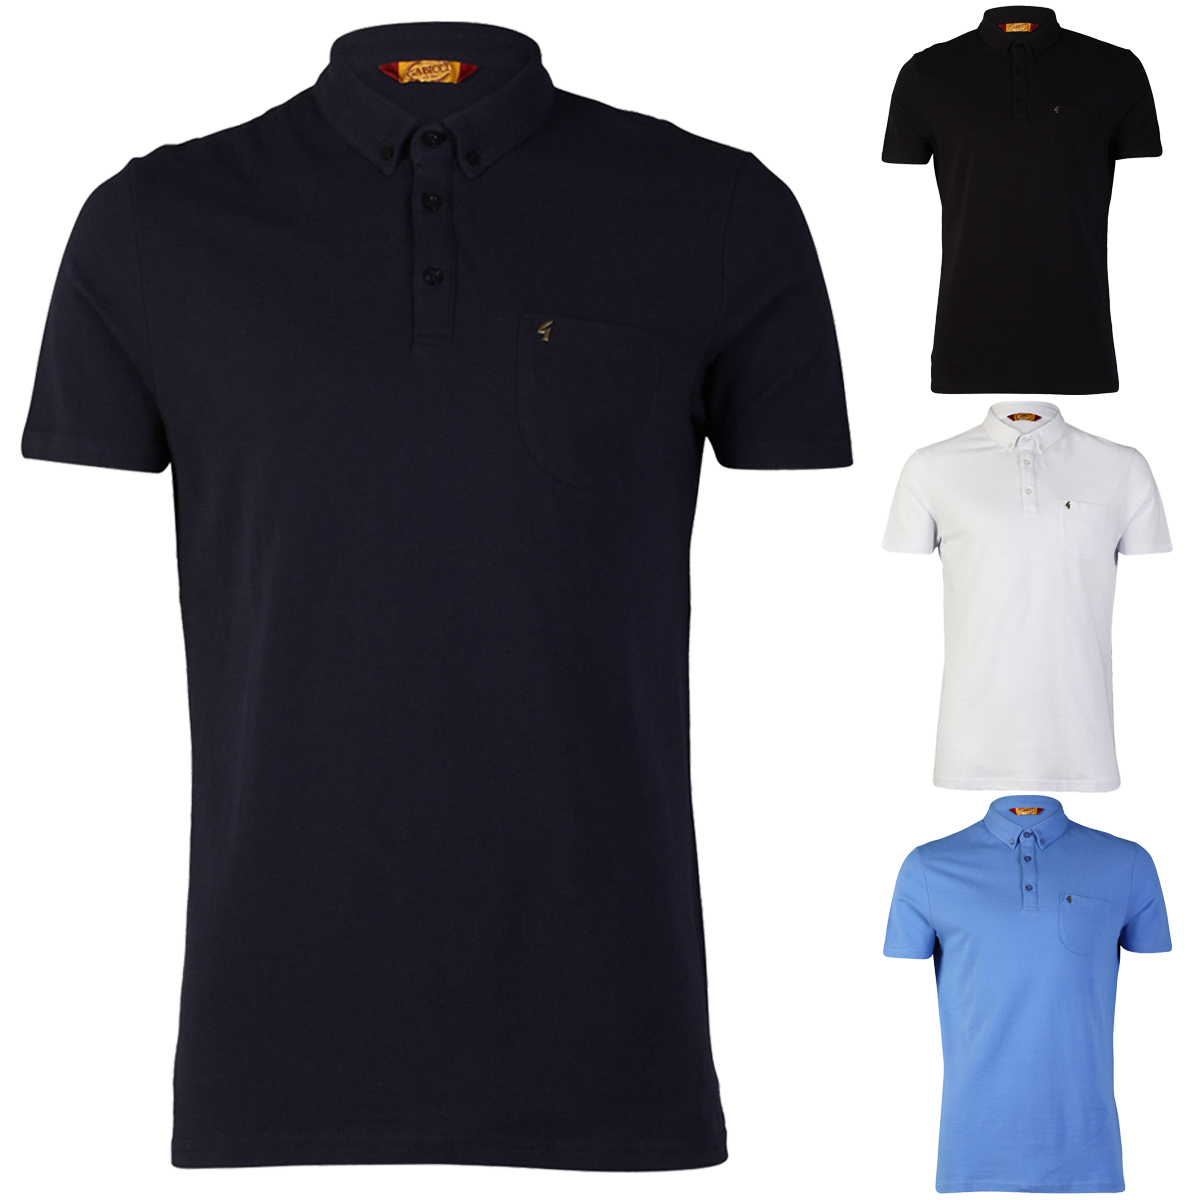 NEW-GABICCI-VINTAGE-MENS-CASUAL-COLLARED-BUTTON-UP-POLO-T-SHIRT-TOP-SIZE-S-XXL